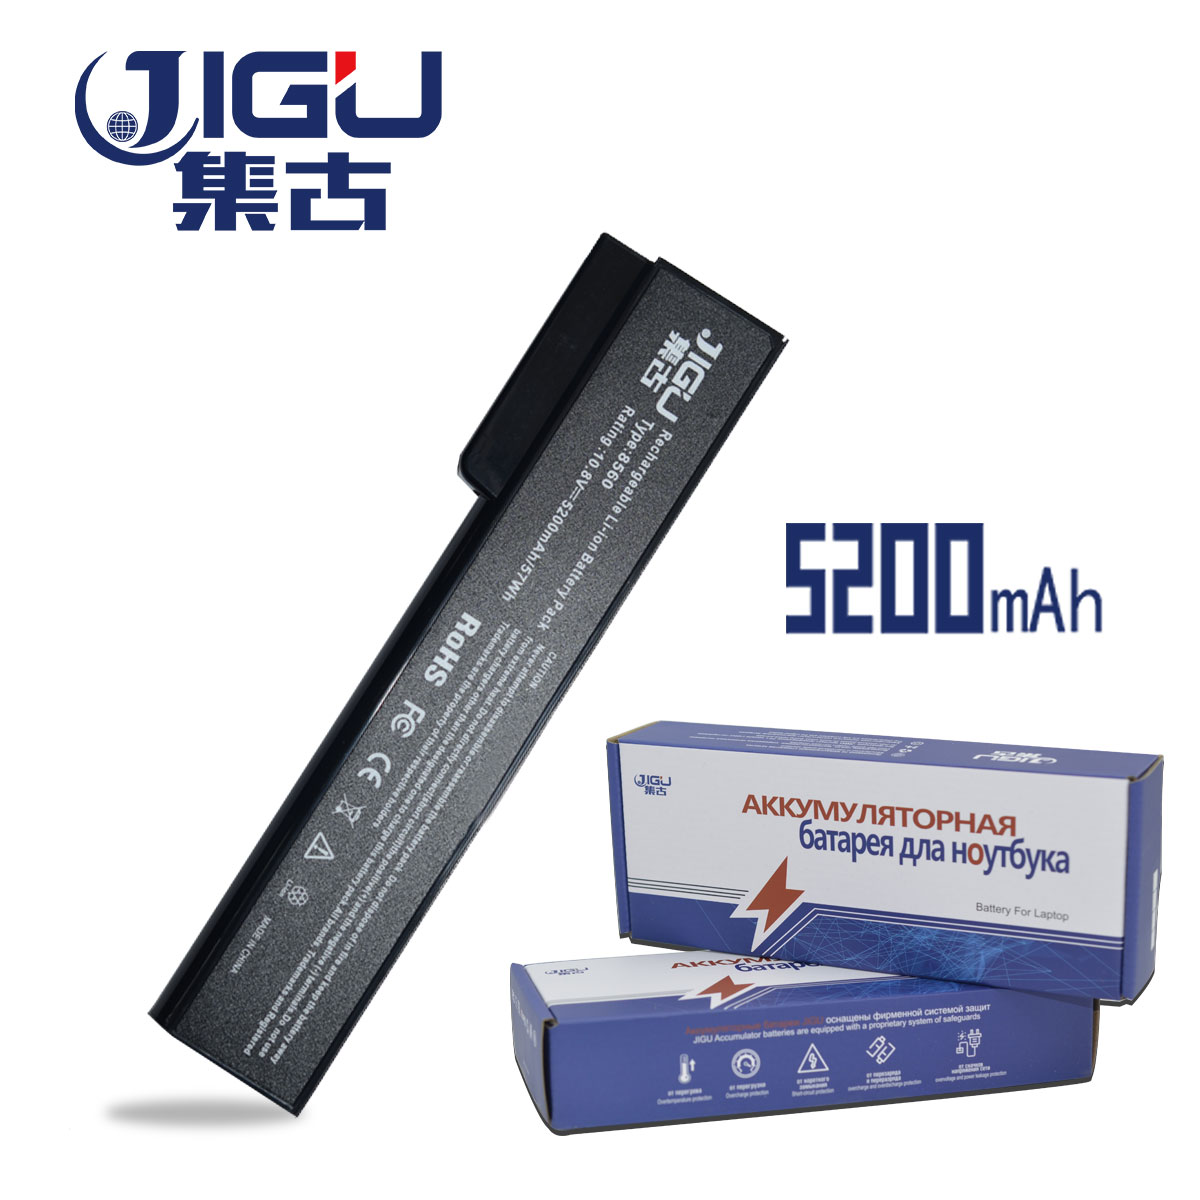 JIGU 6 Cells Laptop Battery For HP 628369-421 8460 CC06XL 628664-001 For EliteBook 8460w 8470p 8460p 8470w 8560p 8570p ssea us keyboard new for hp elitebook 8410p 8460p 8460w 8470p 8470w probook 6460b 6465b 6470b 6475b without frame